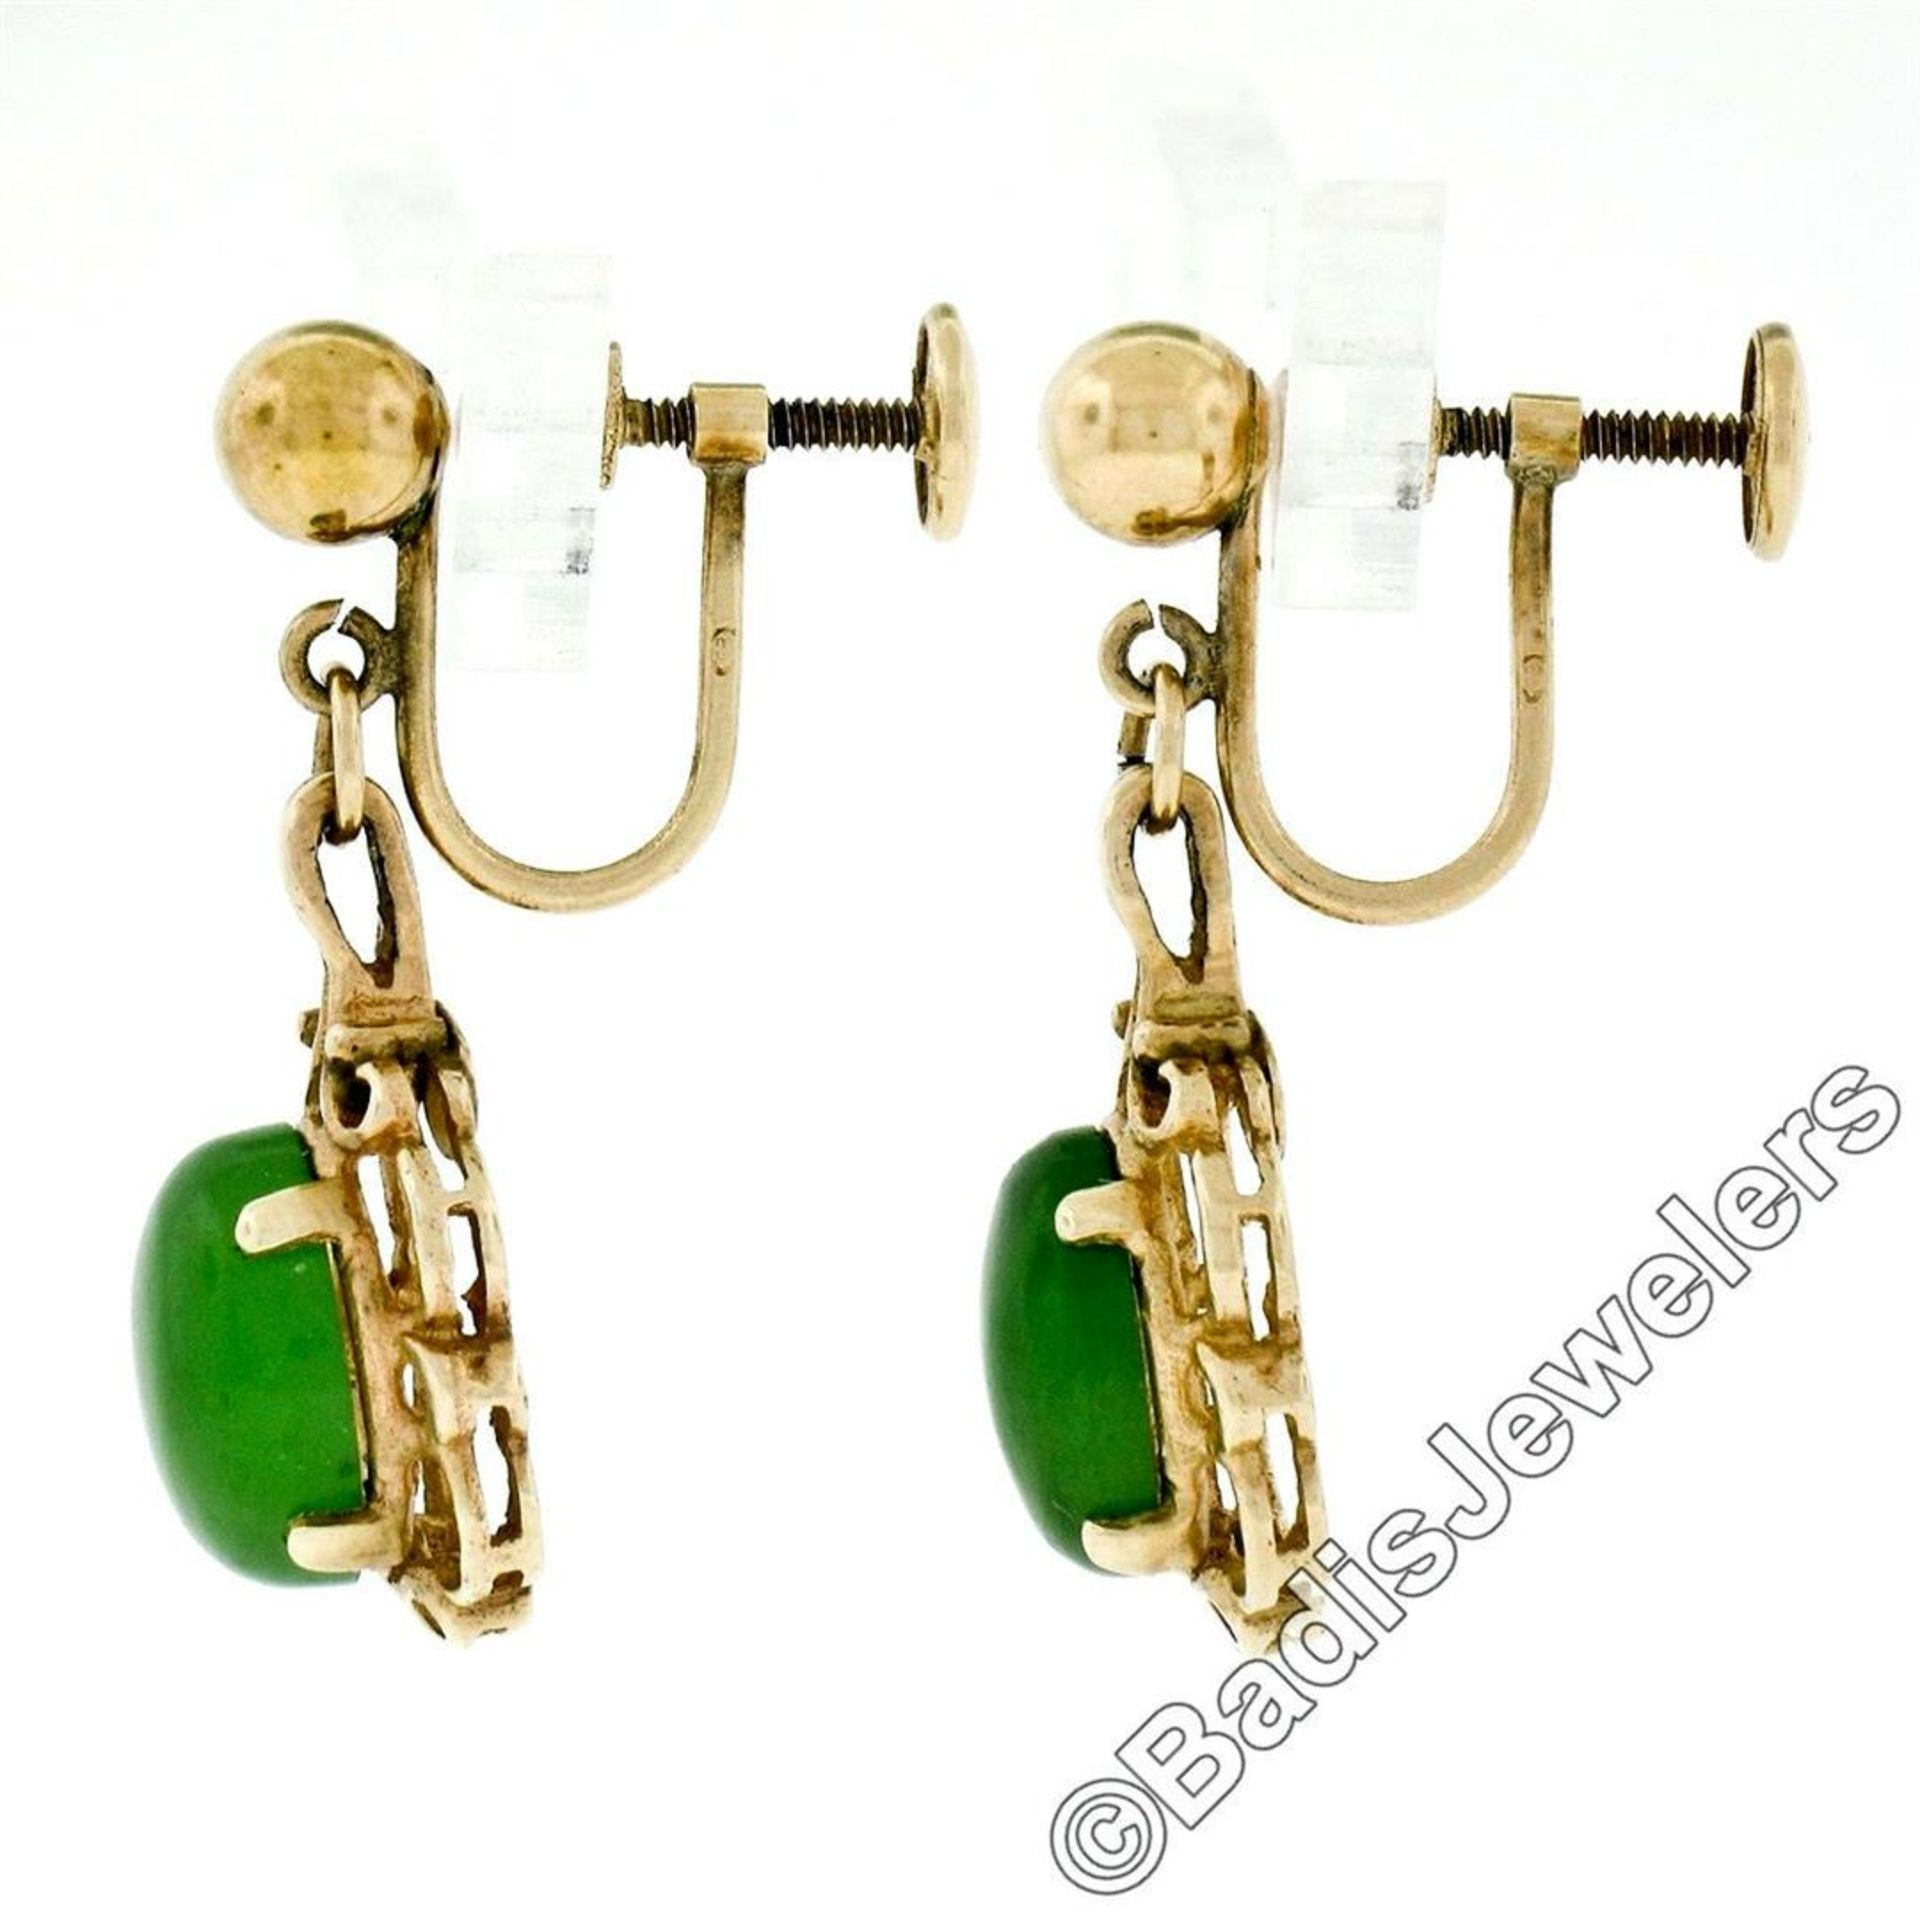 Vintage 14kt Yellow Gold Oval Green Jade Non Pierced Earrings - Image 3 of 6